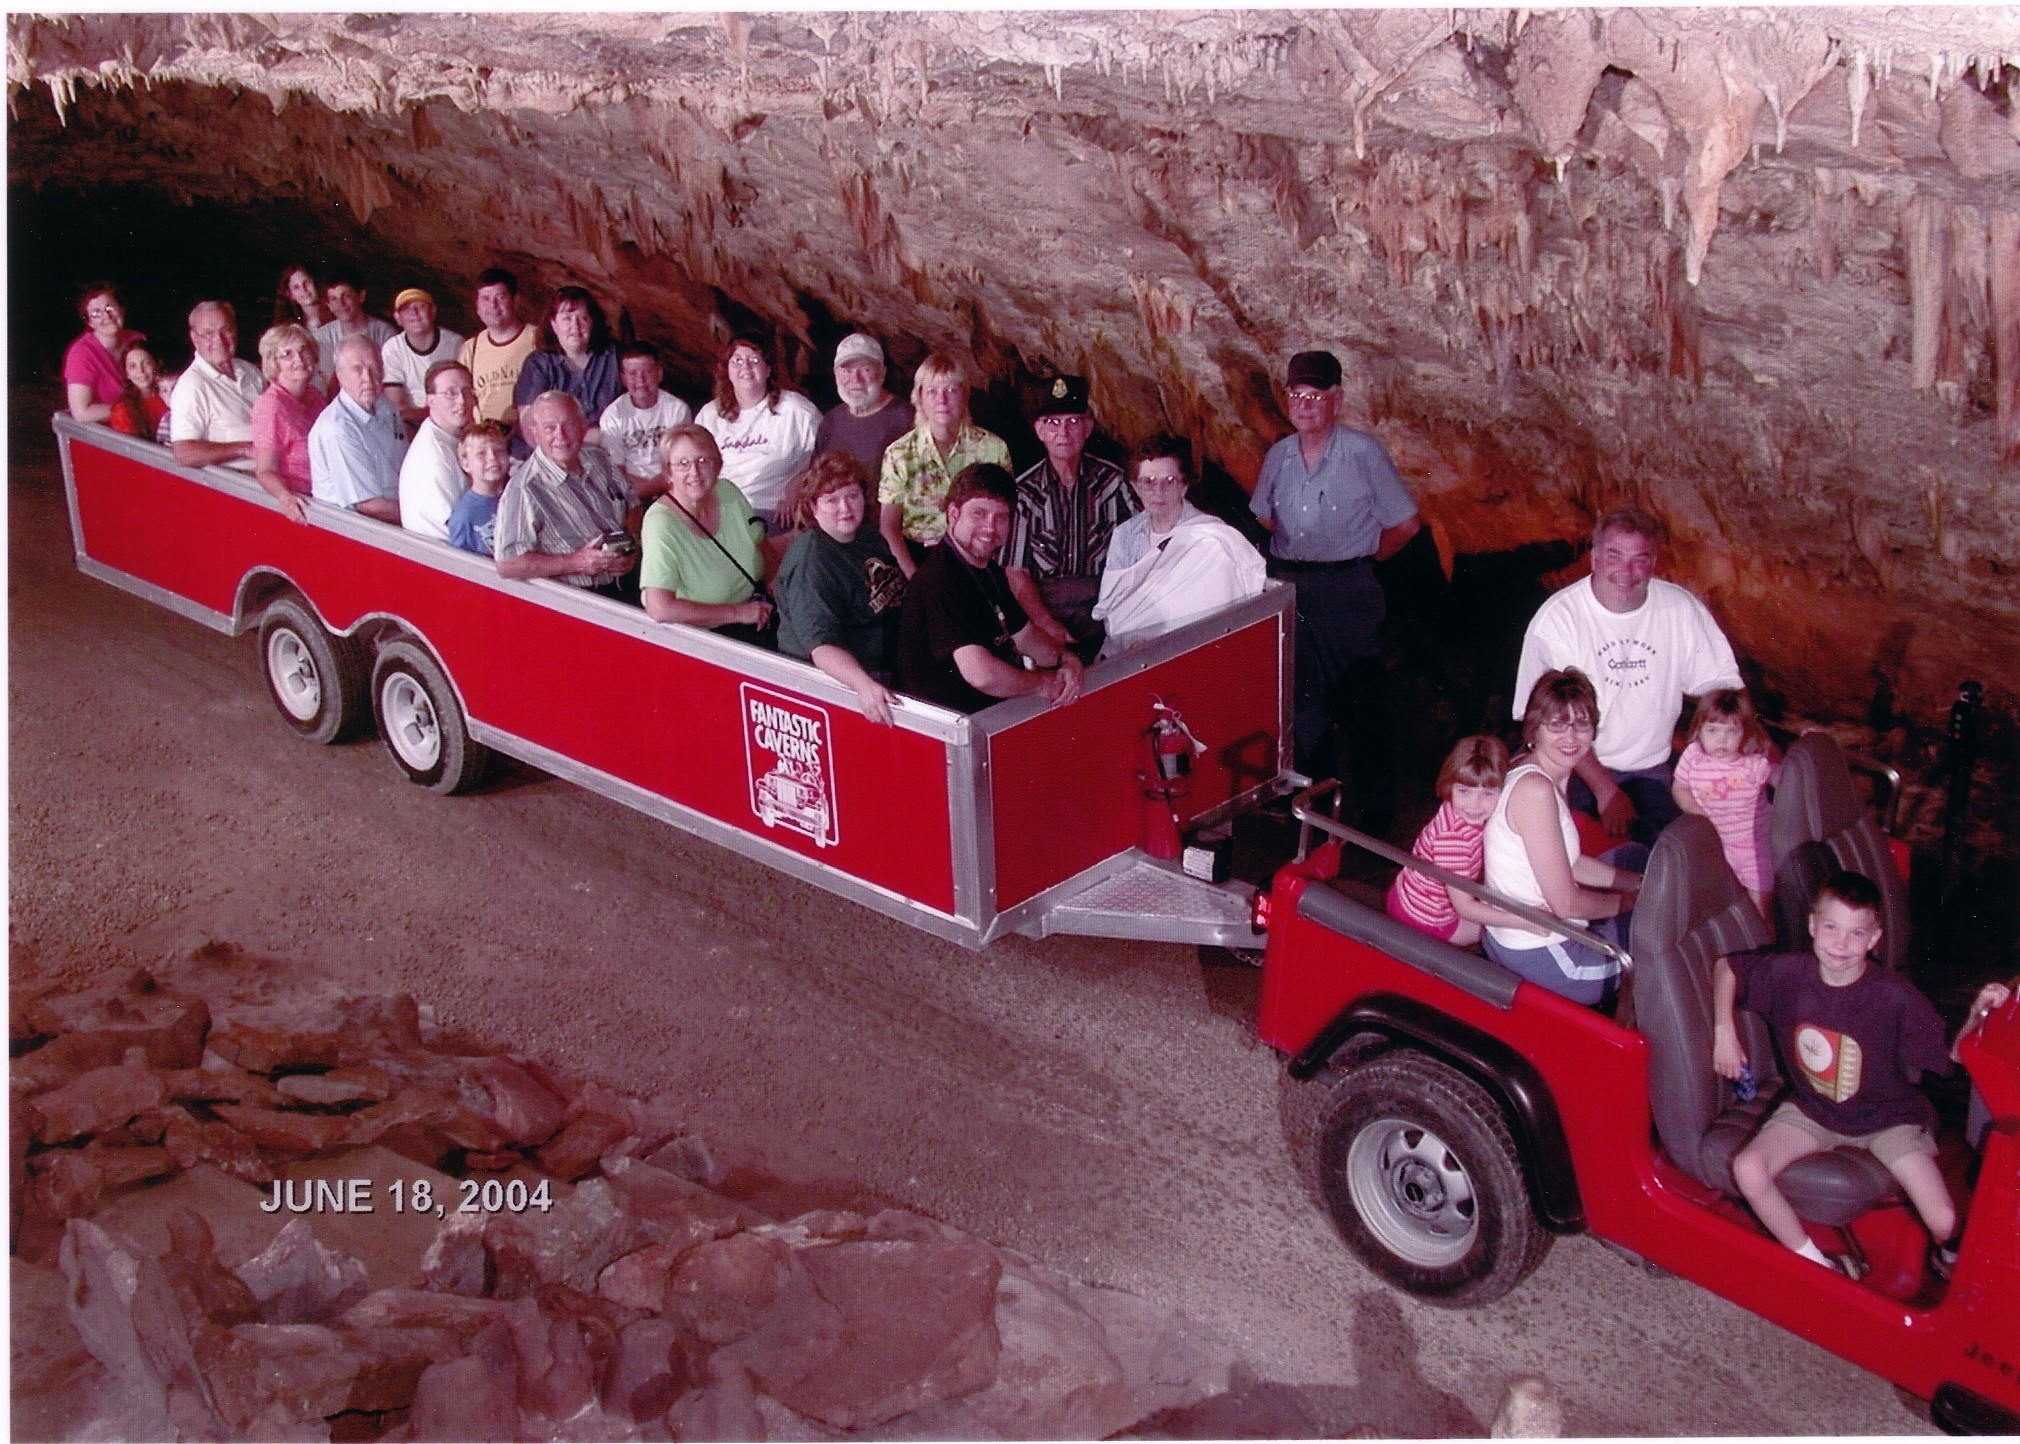 2004 OFHS meeting (Some OFHS members riding through the Caverns near Springfield, Missouri